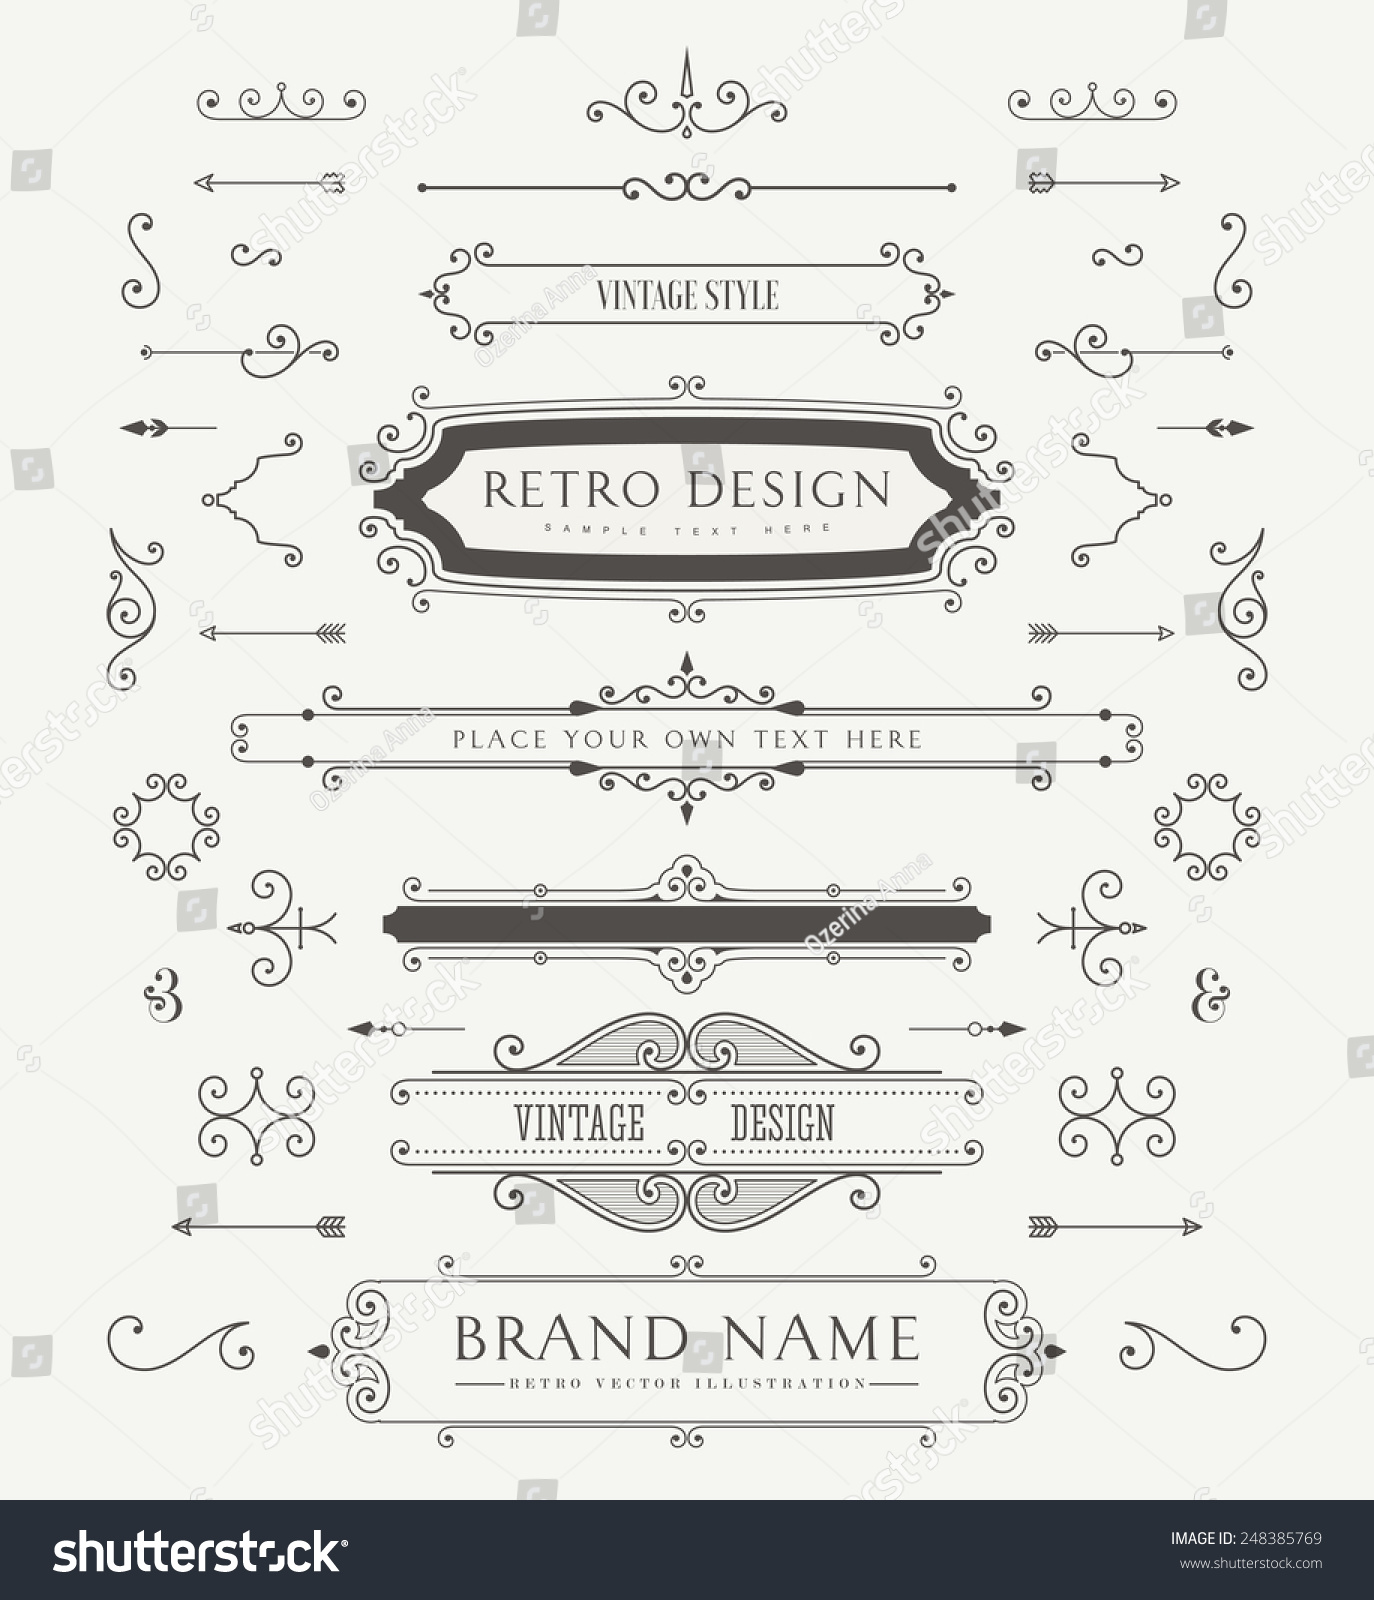 Vintage style ornaments - Set Of Vintage Decorations Elements Flourishes Calligraphic Ornaments And Frames Retro Style Design Collection